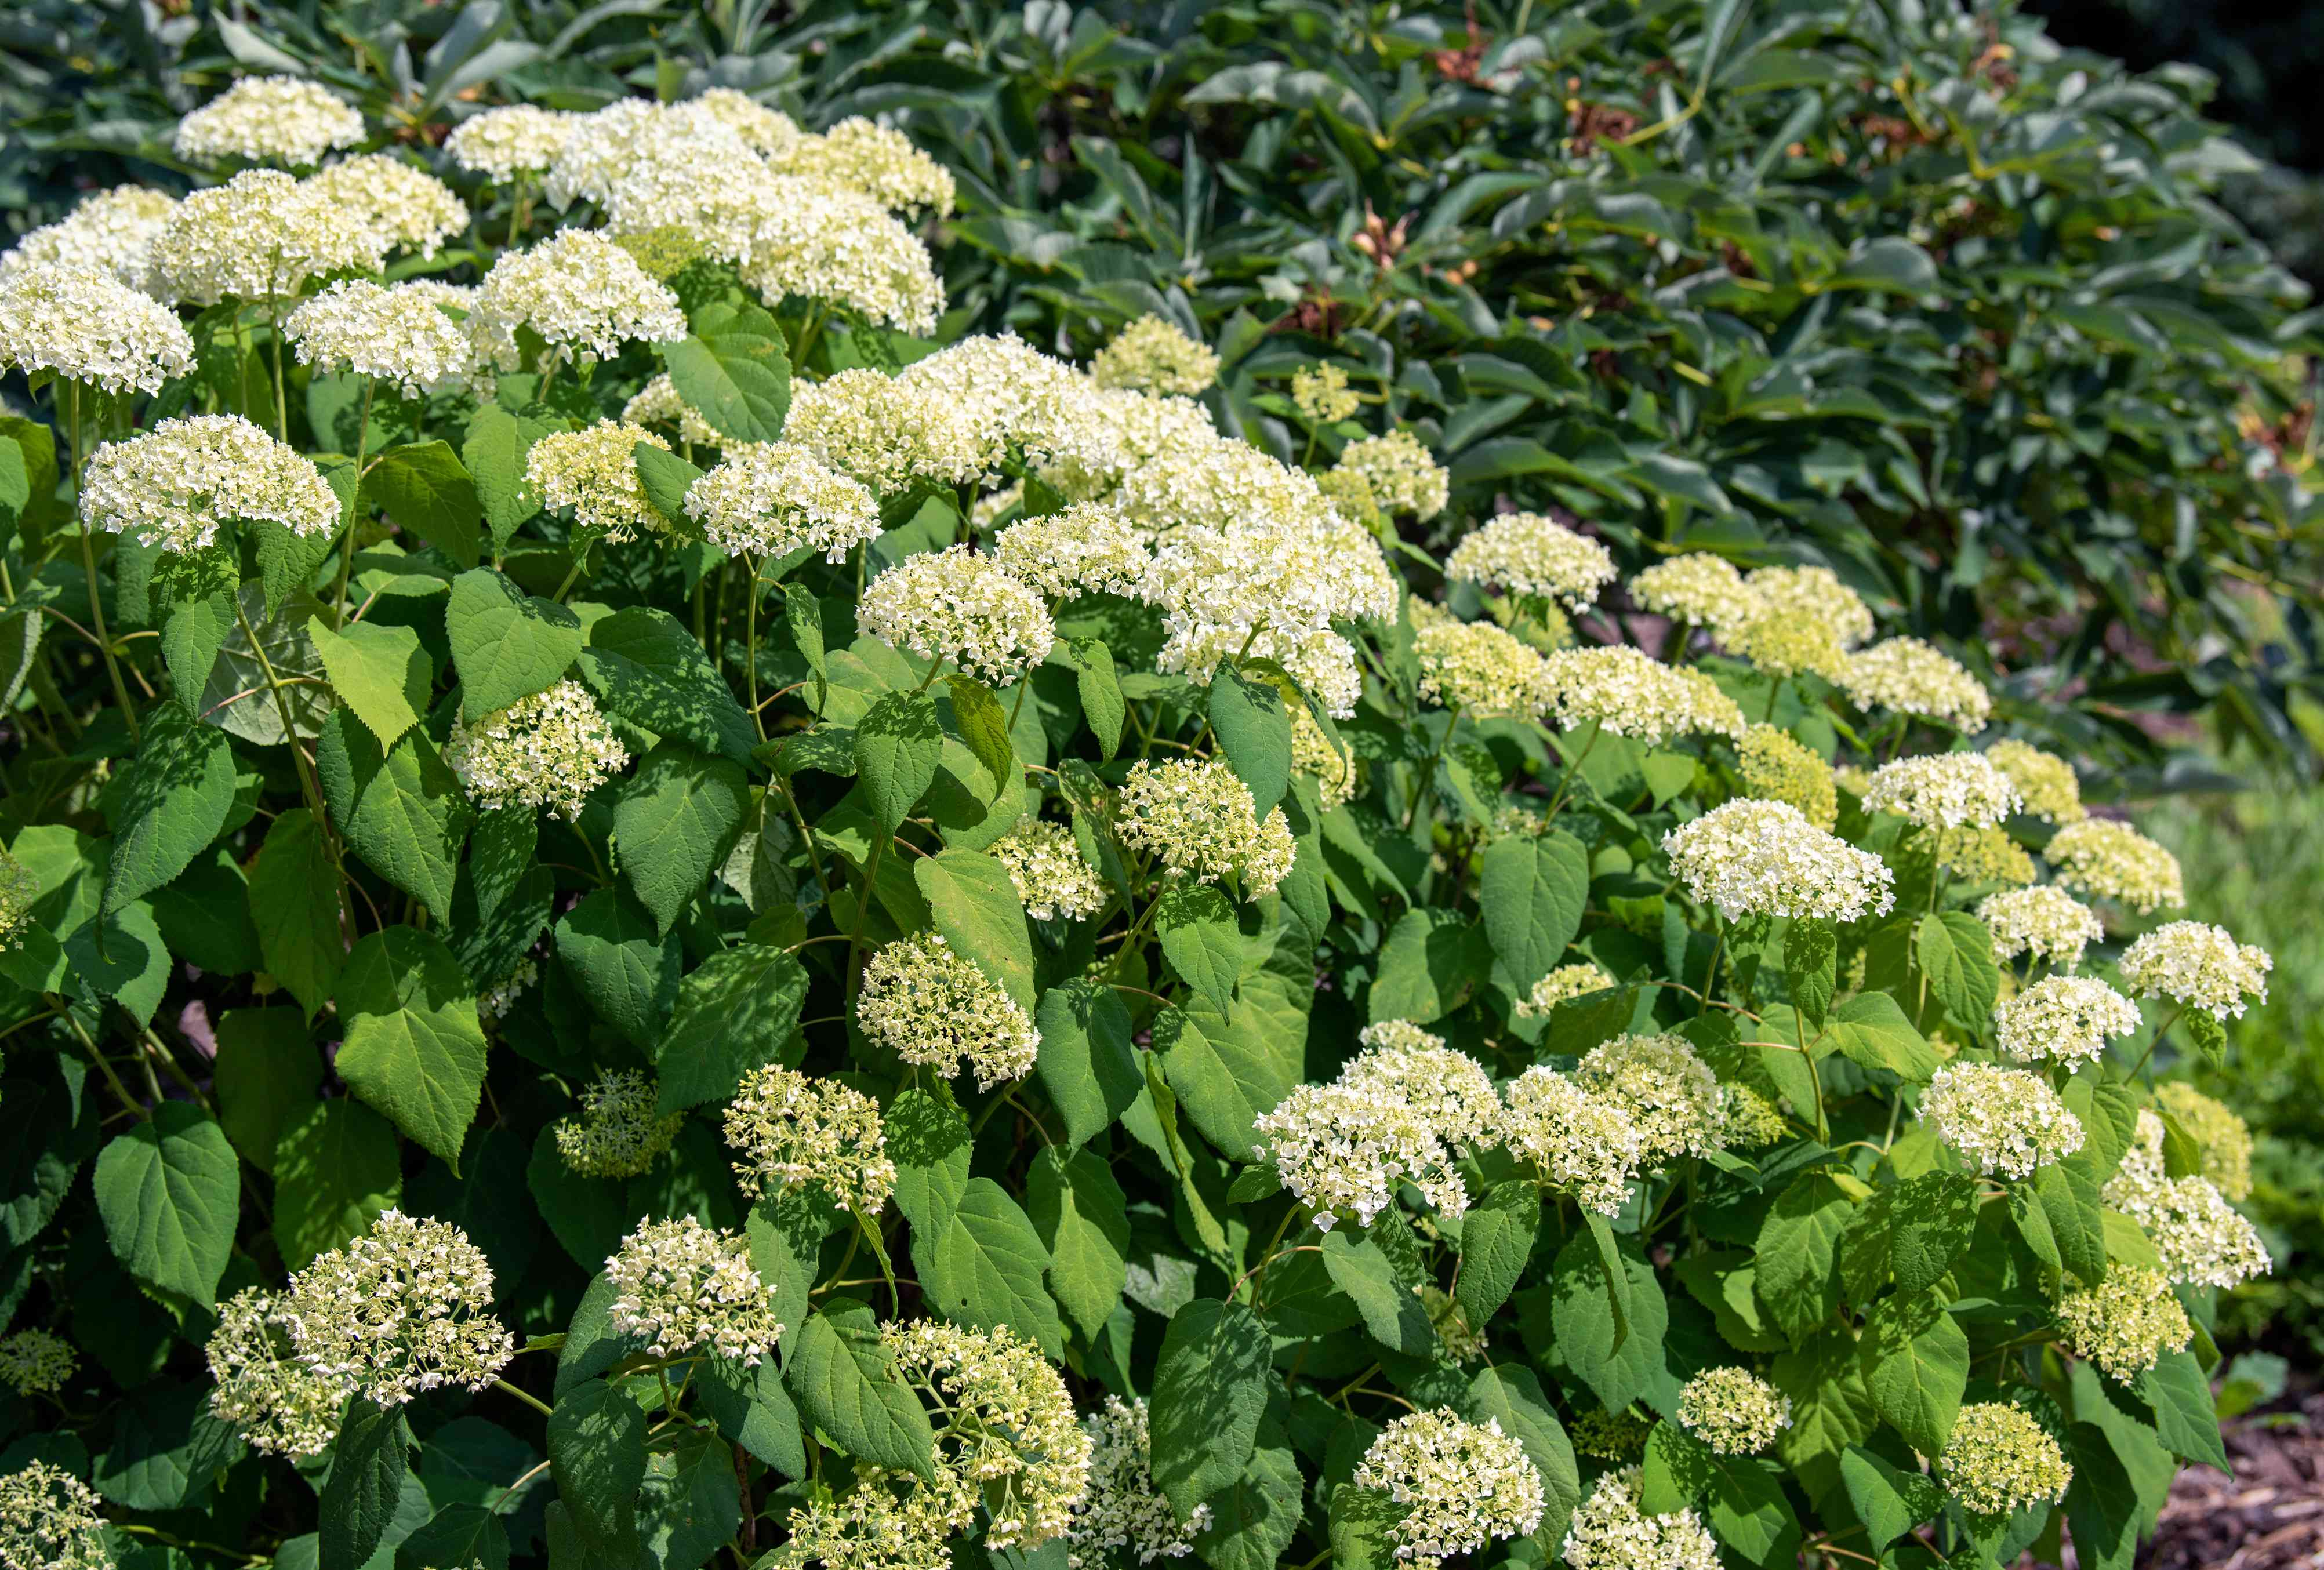 Annabelle hydrangea shrub with white and light green ball-shaped flower clusters in sunlight